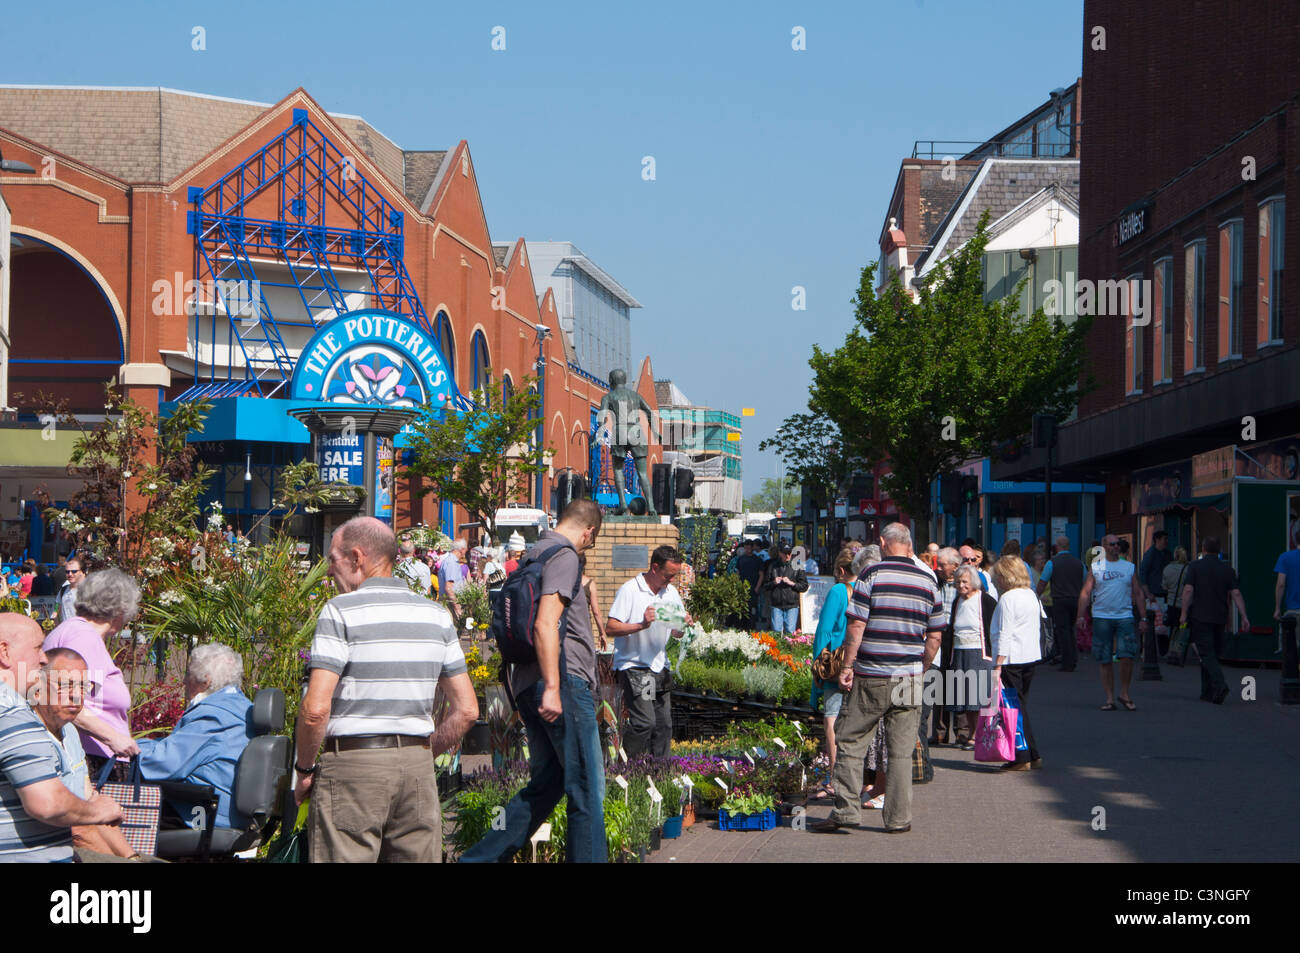 Stoke-on-Trent City centre with the Potteries shopping centre in the background. Staffordshire, UK - Stock Image